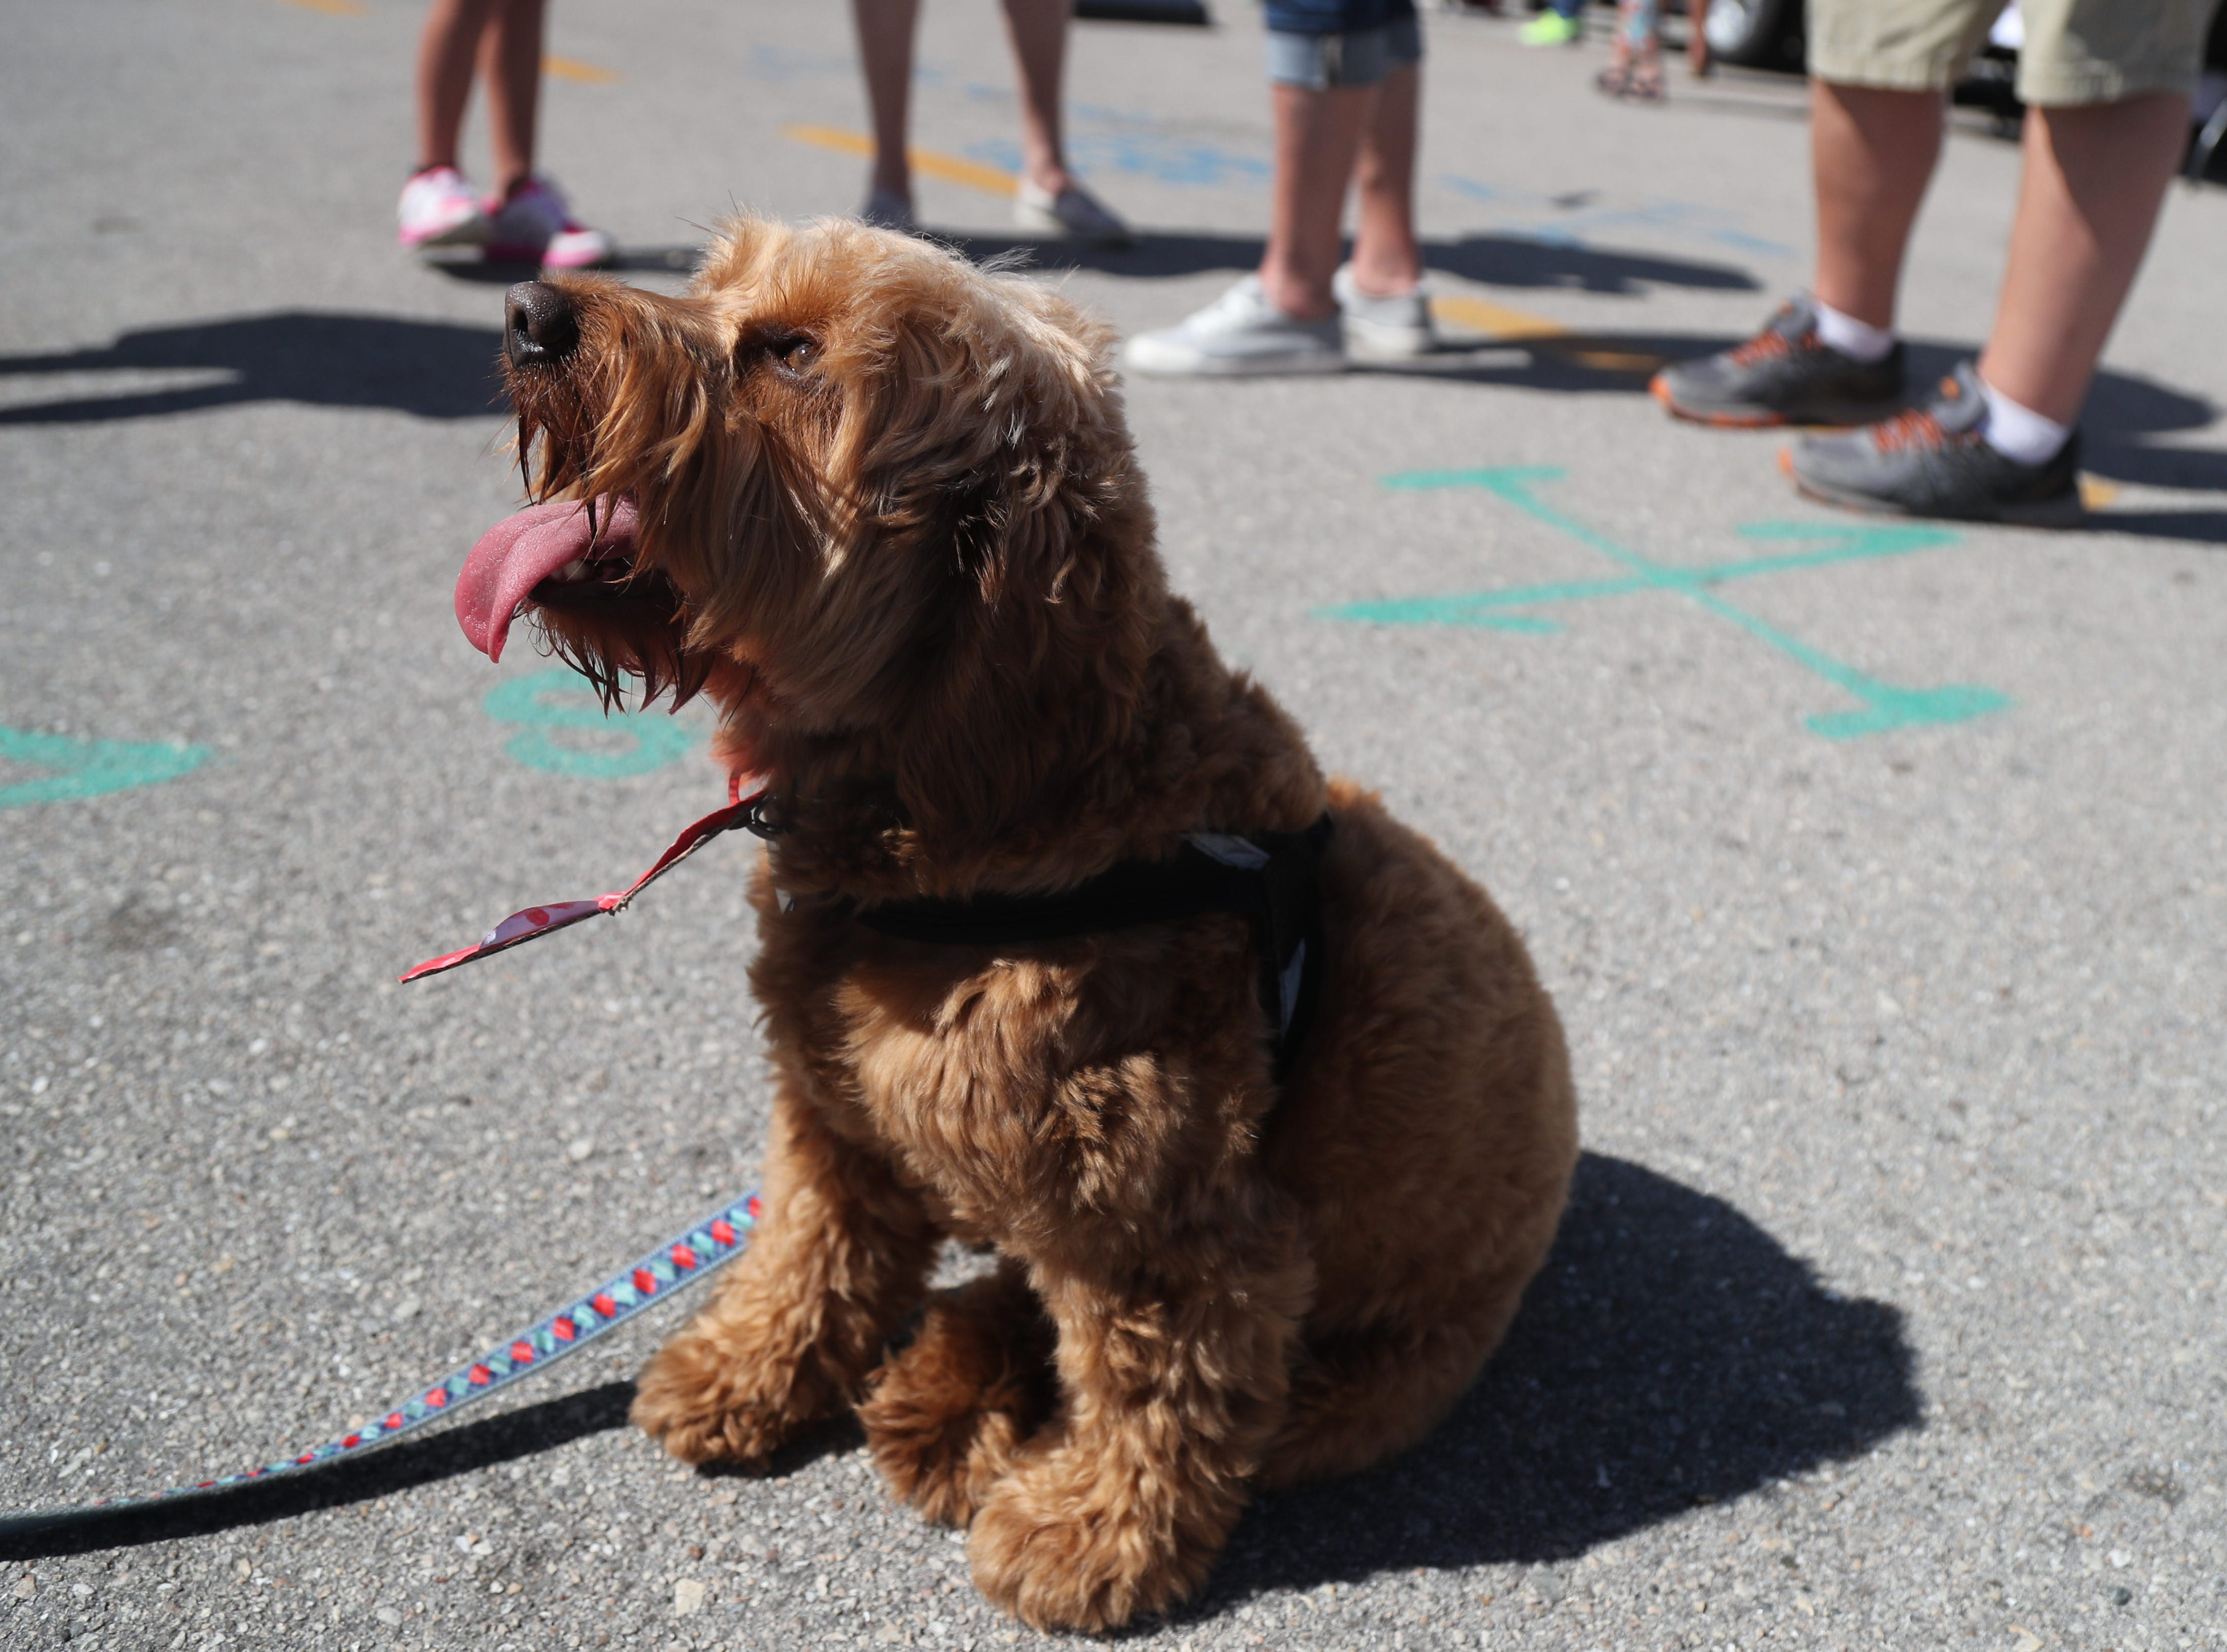 Dogs and their owners came to downtown Fort Myers on Saturday, Feb. 9, 2019, for the Mutt Strutt. The event included wiener dog races and a pet parade.